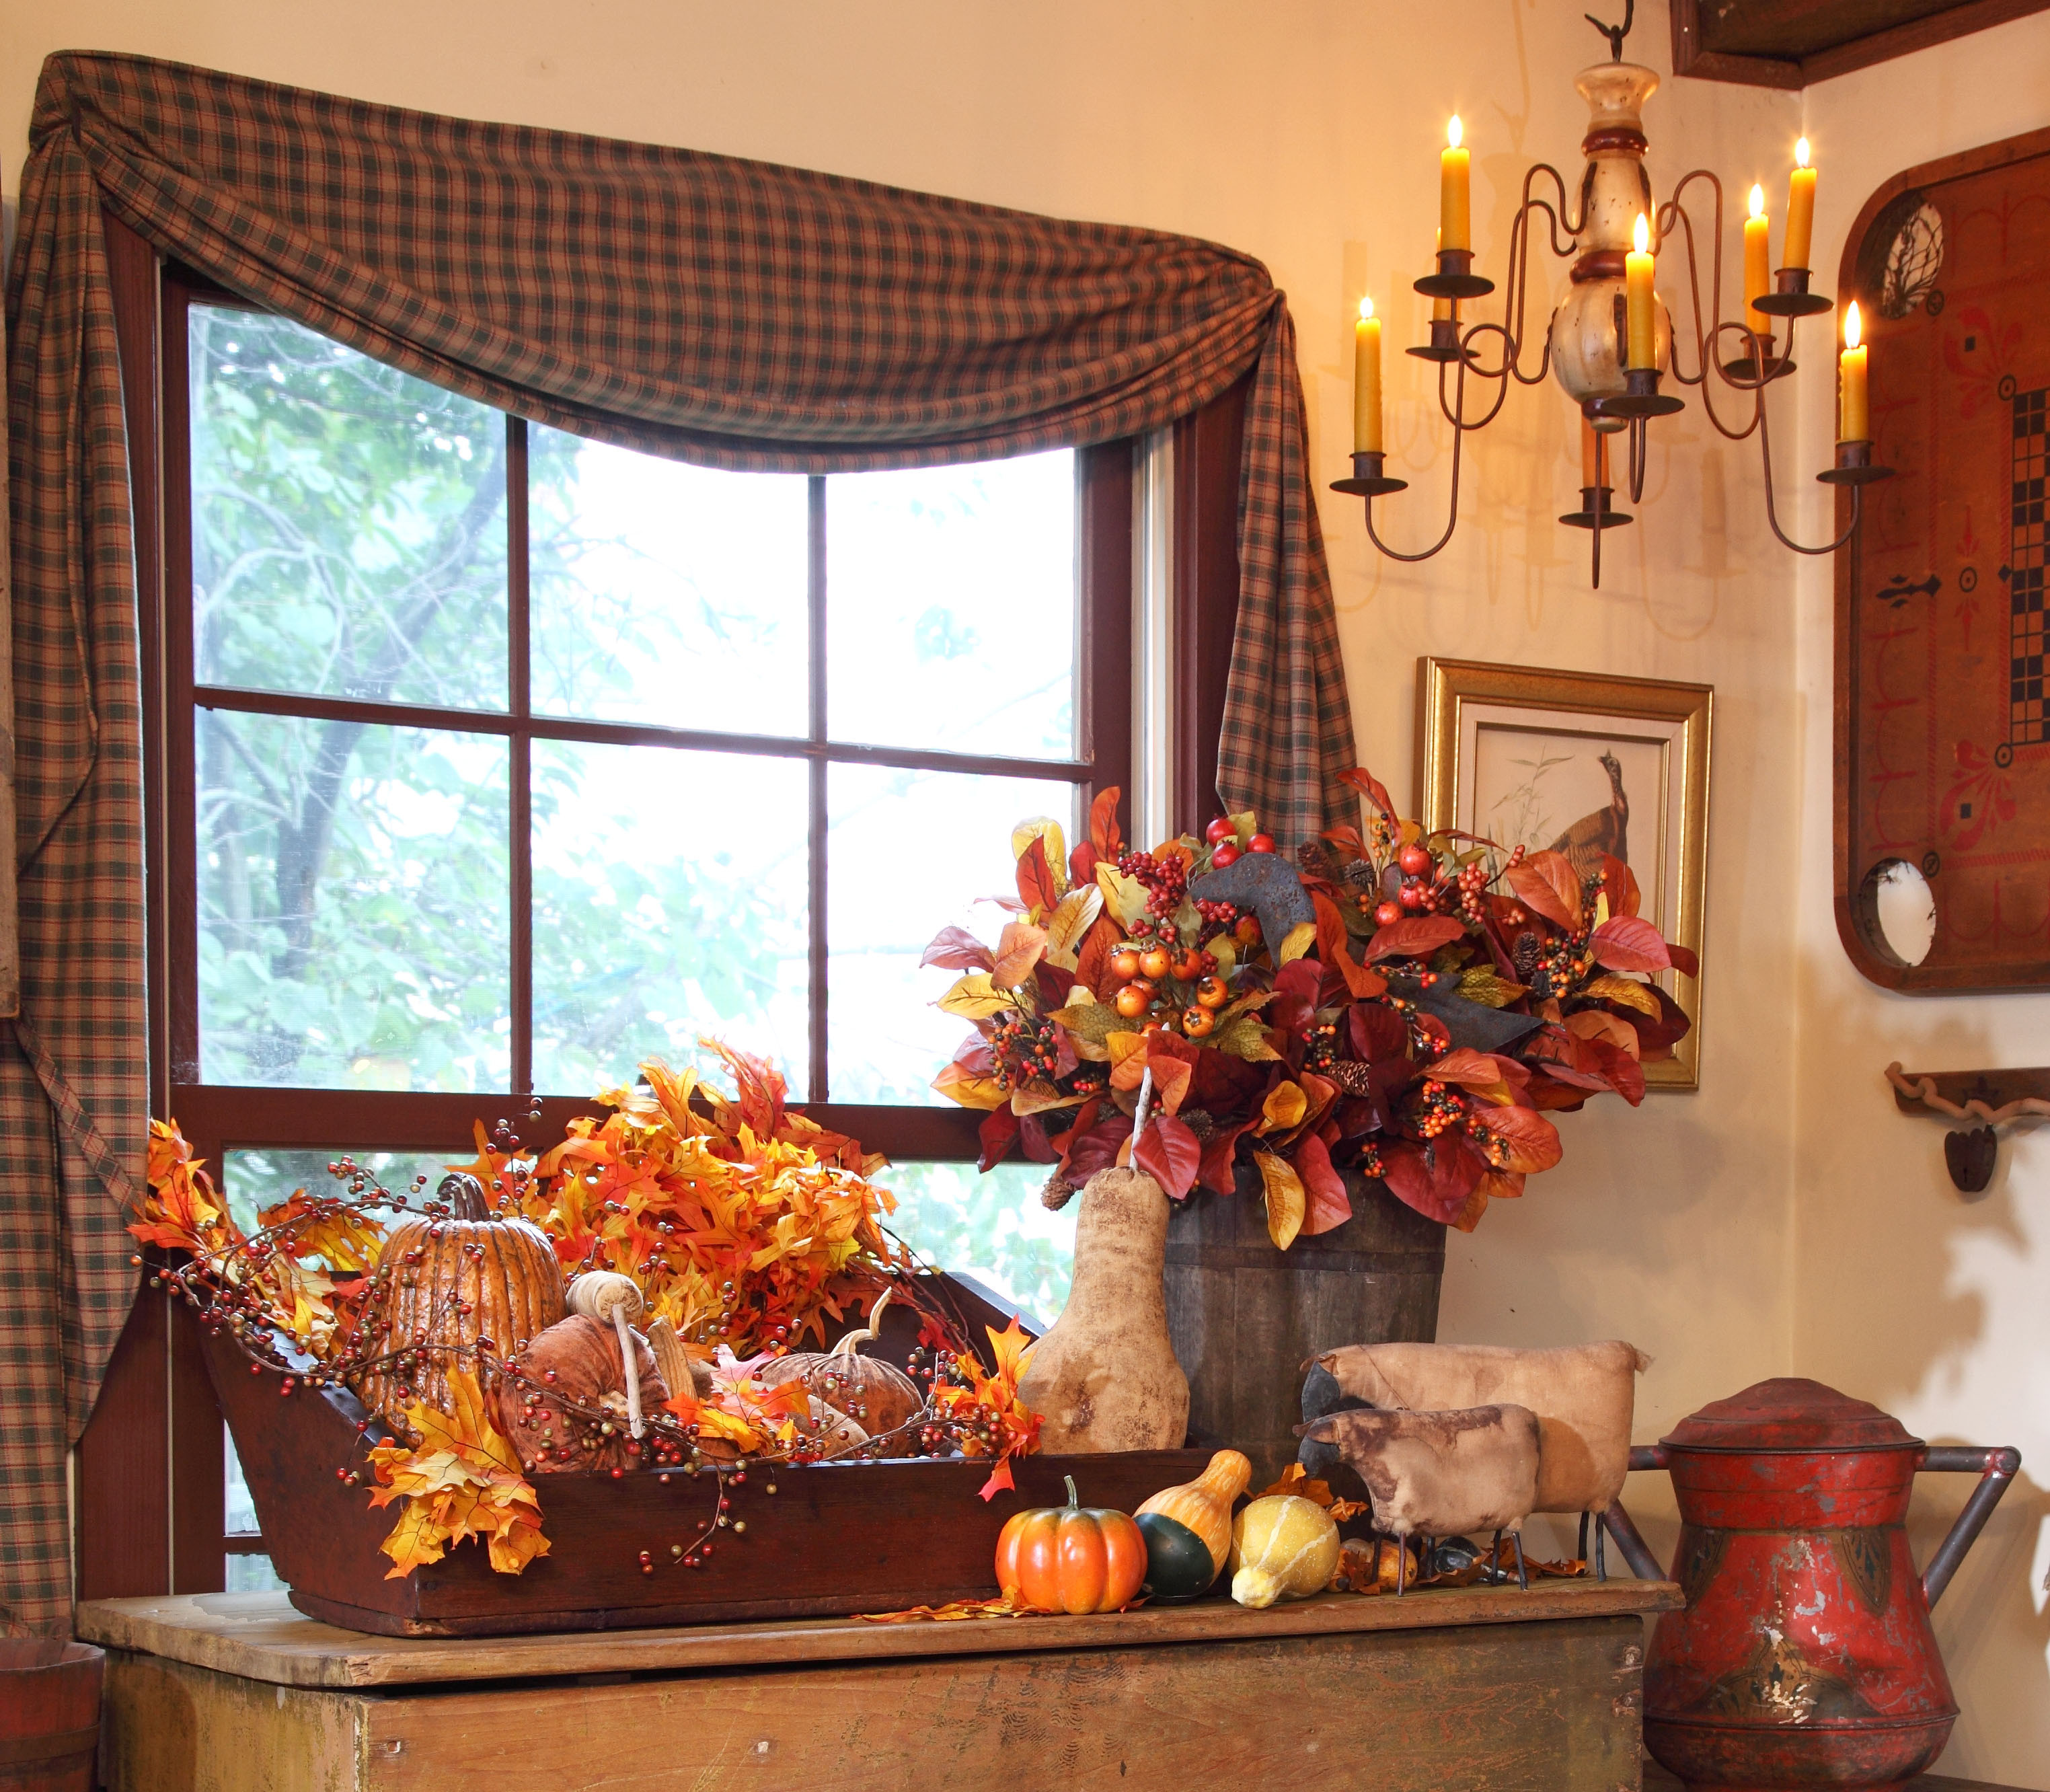 At Home Fall Decor  3 Quick Fall Decorating Tips